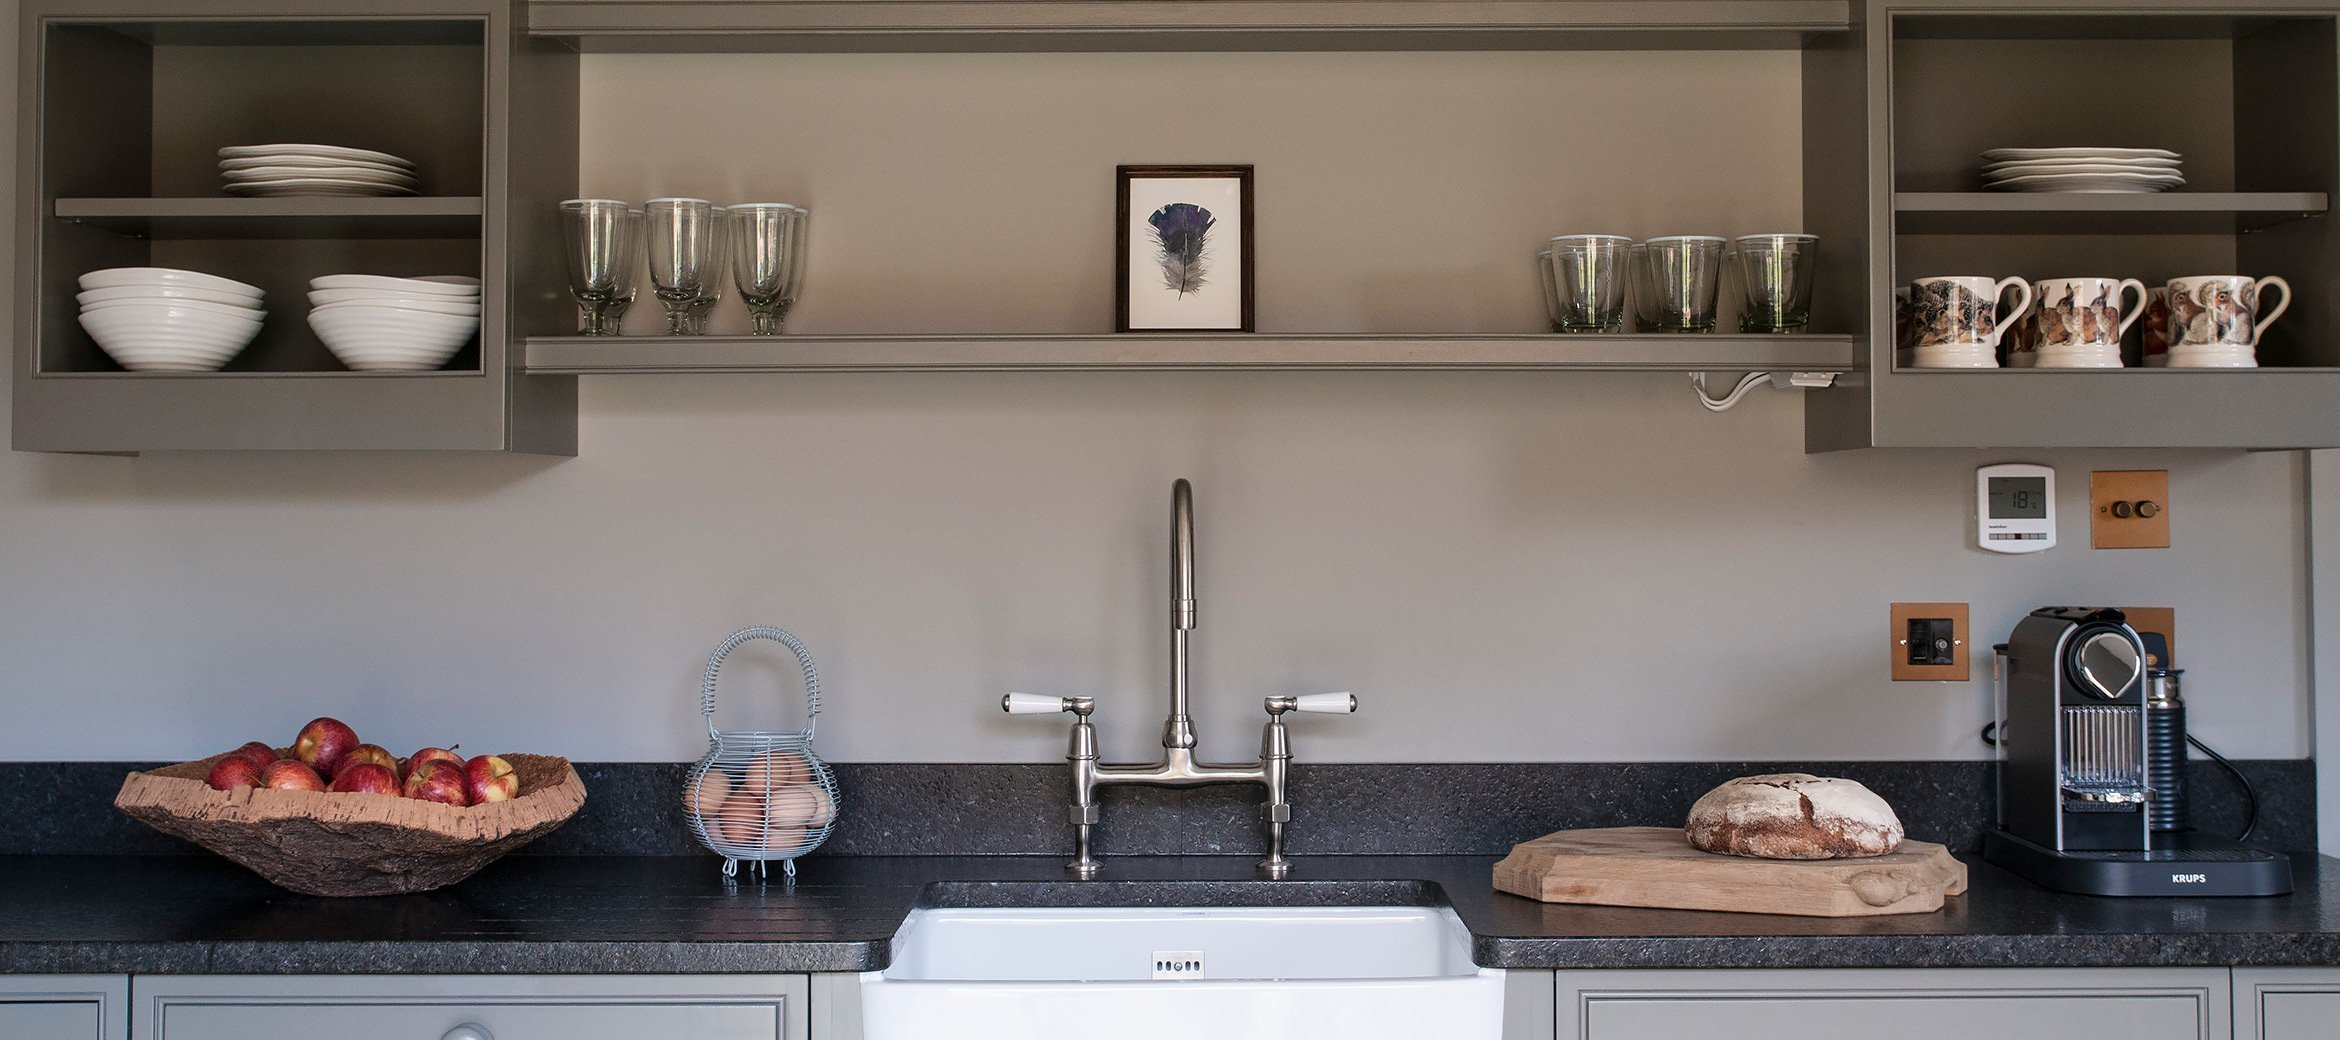 greys-luxury-cotswold-cottage-kitchen-butlers-sink